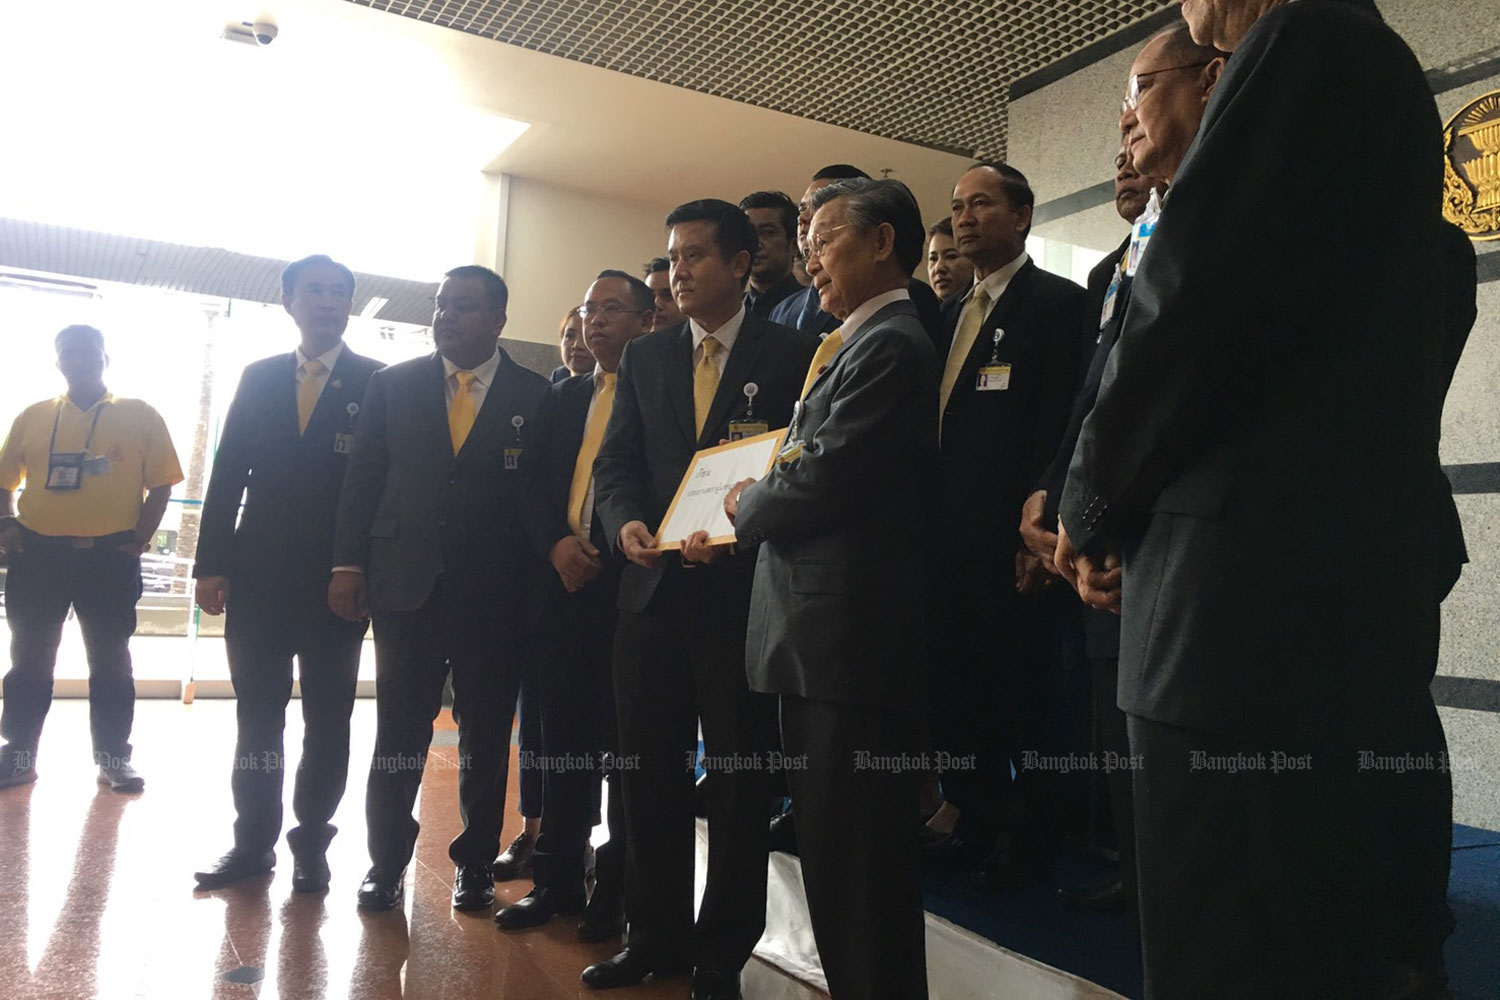 MPs of the Palang Pracharath Party file their petition against 33 opposition MPs with House Speaker Chuan Leekpai at the headquarters of TOT Plc in Bangkok on Thursday. (Photo by Aekarach Sattaburuth)